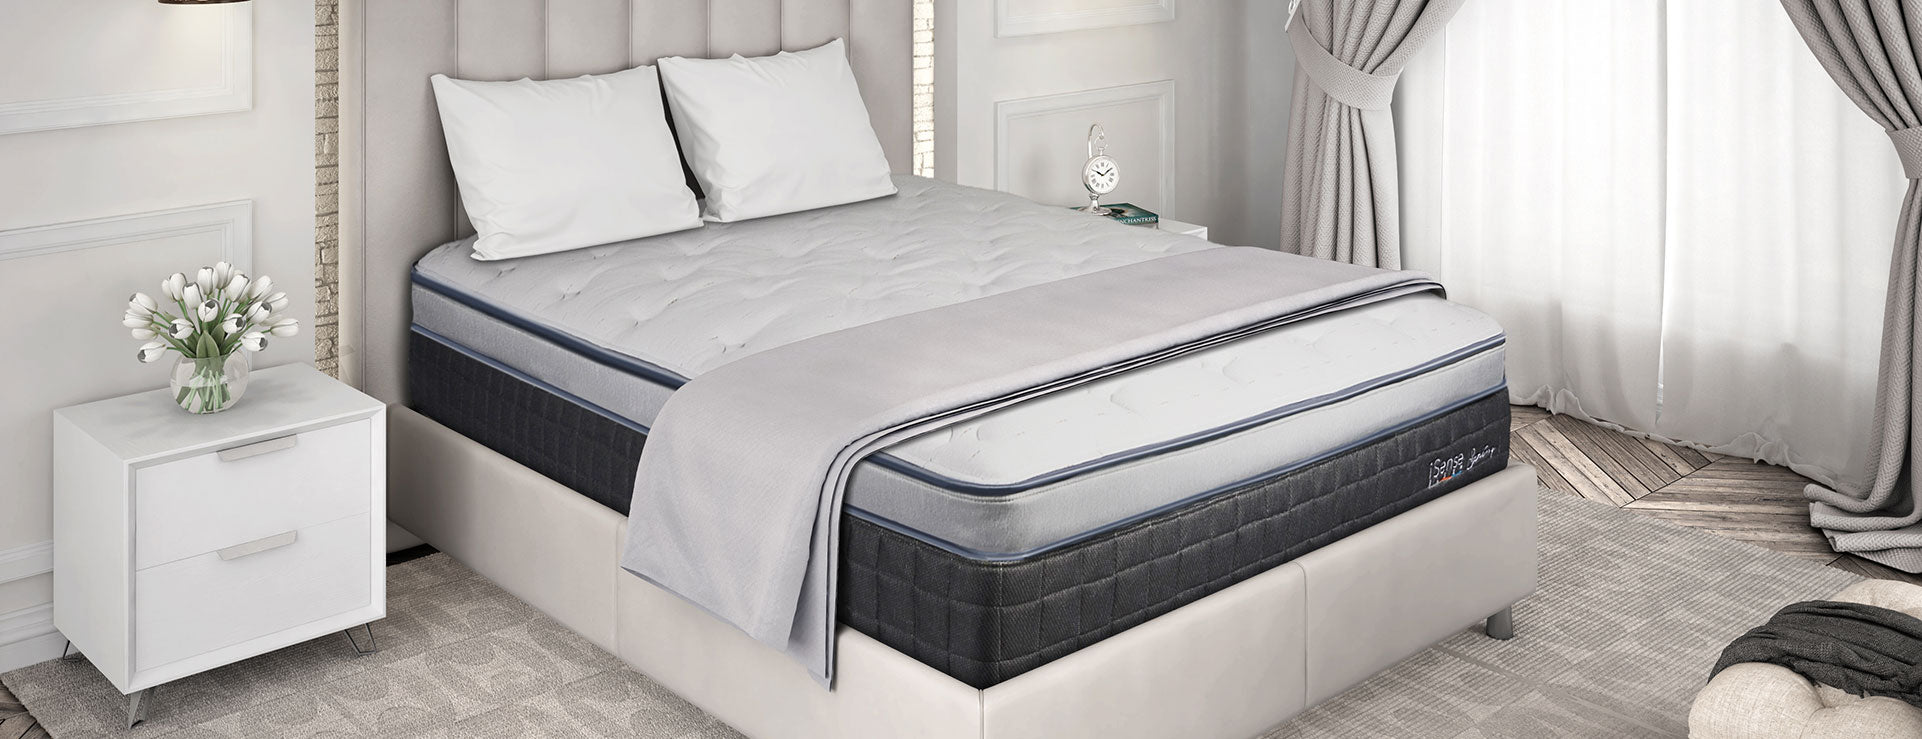 COMFORT CONTROL Spring Mattress - California King Split